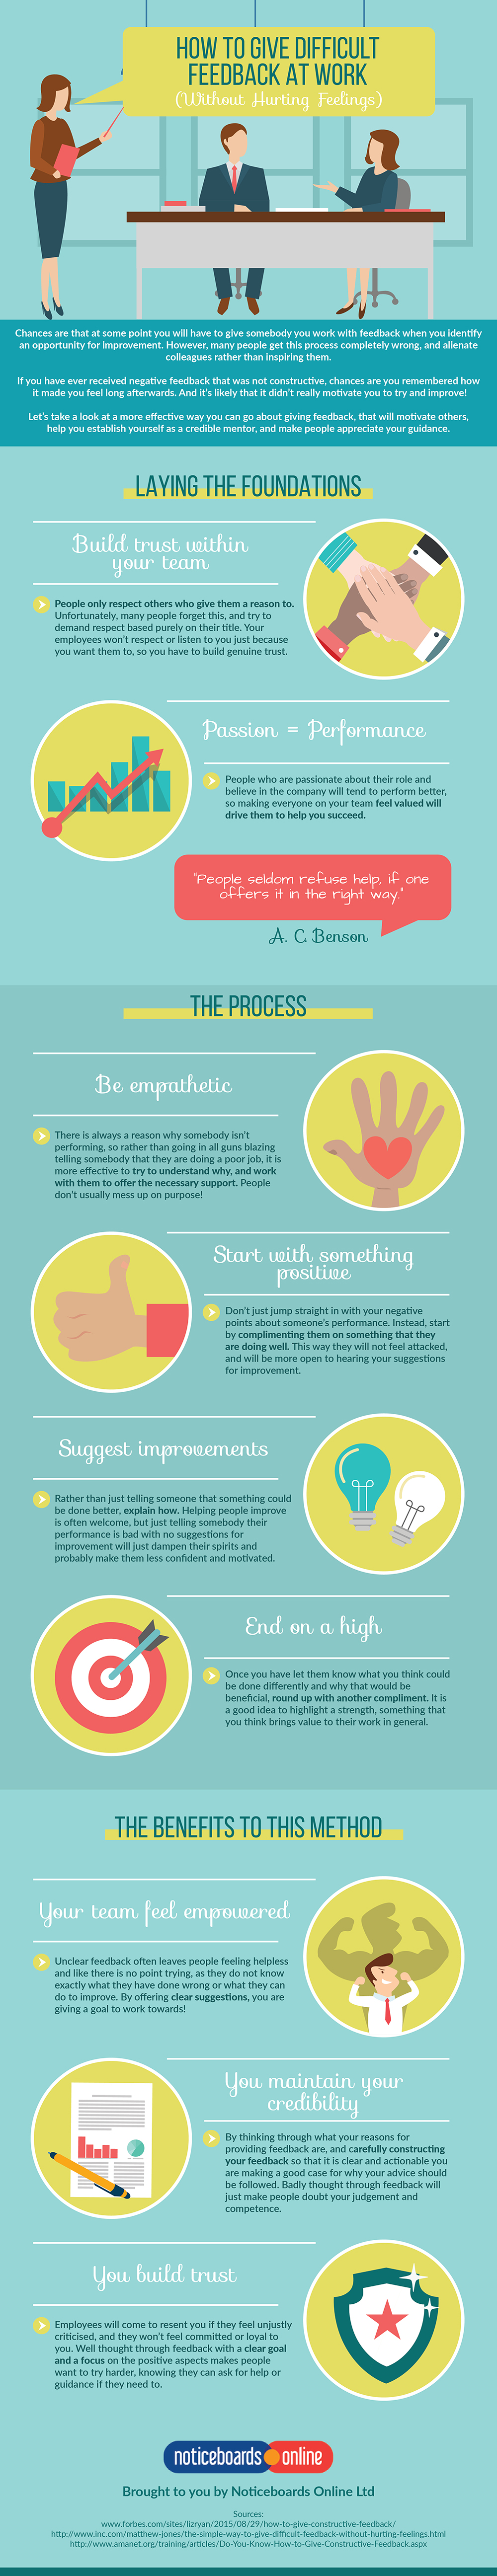 How To Give Difficult Feedback At Work Without Hurting Feelings [Infographic]